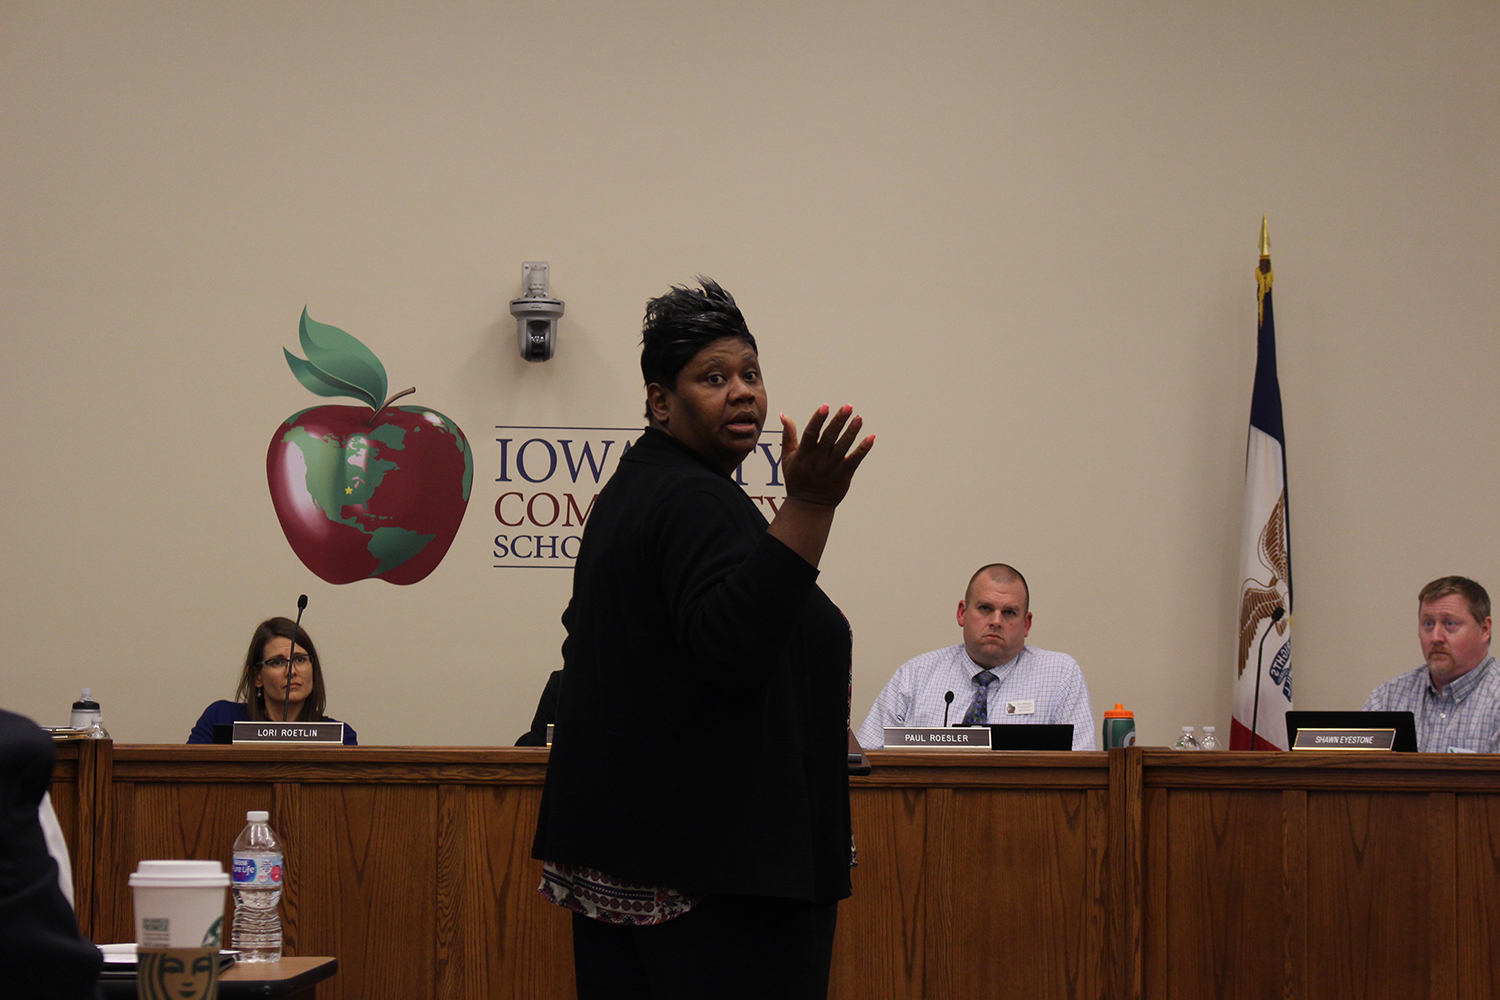 Member of the Johnson County Board of Supervisors Royceann Porter speaks to the school board during their meeting on April 23, 2019.